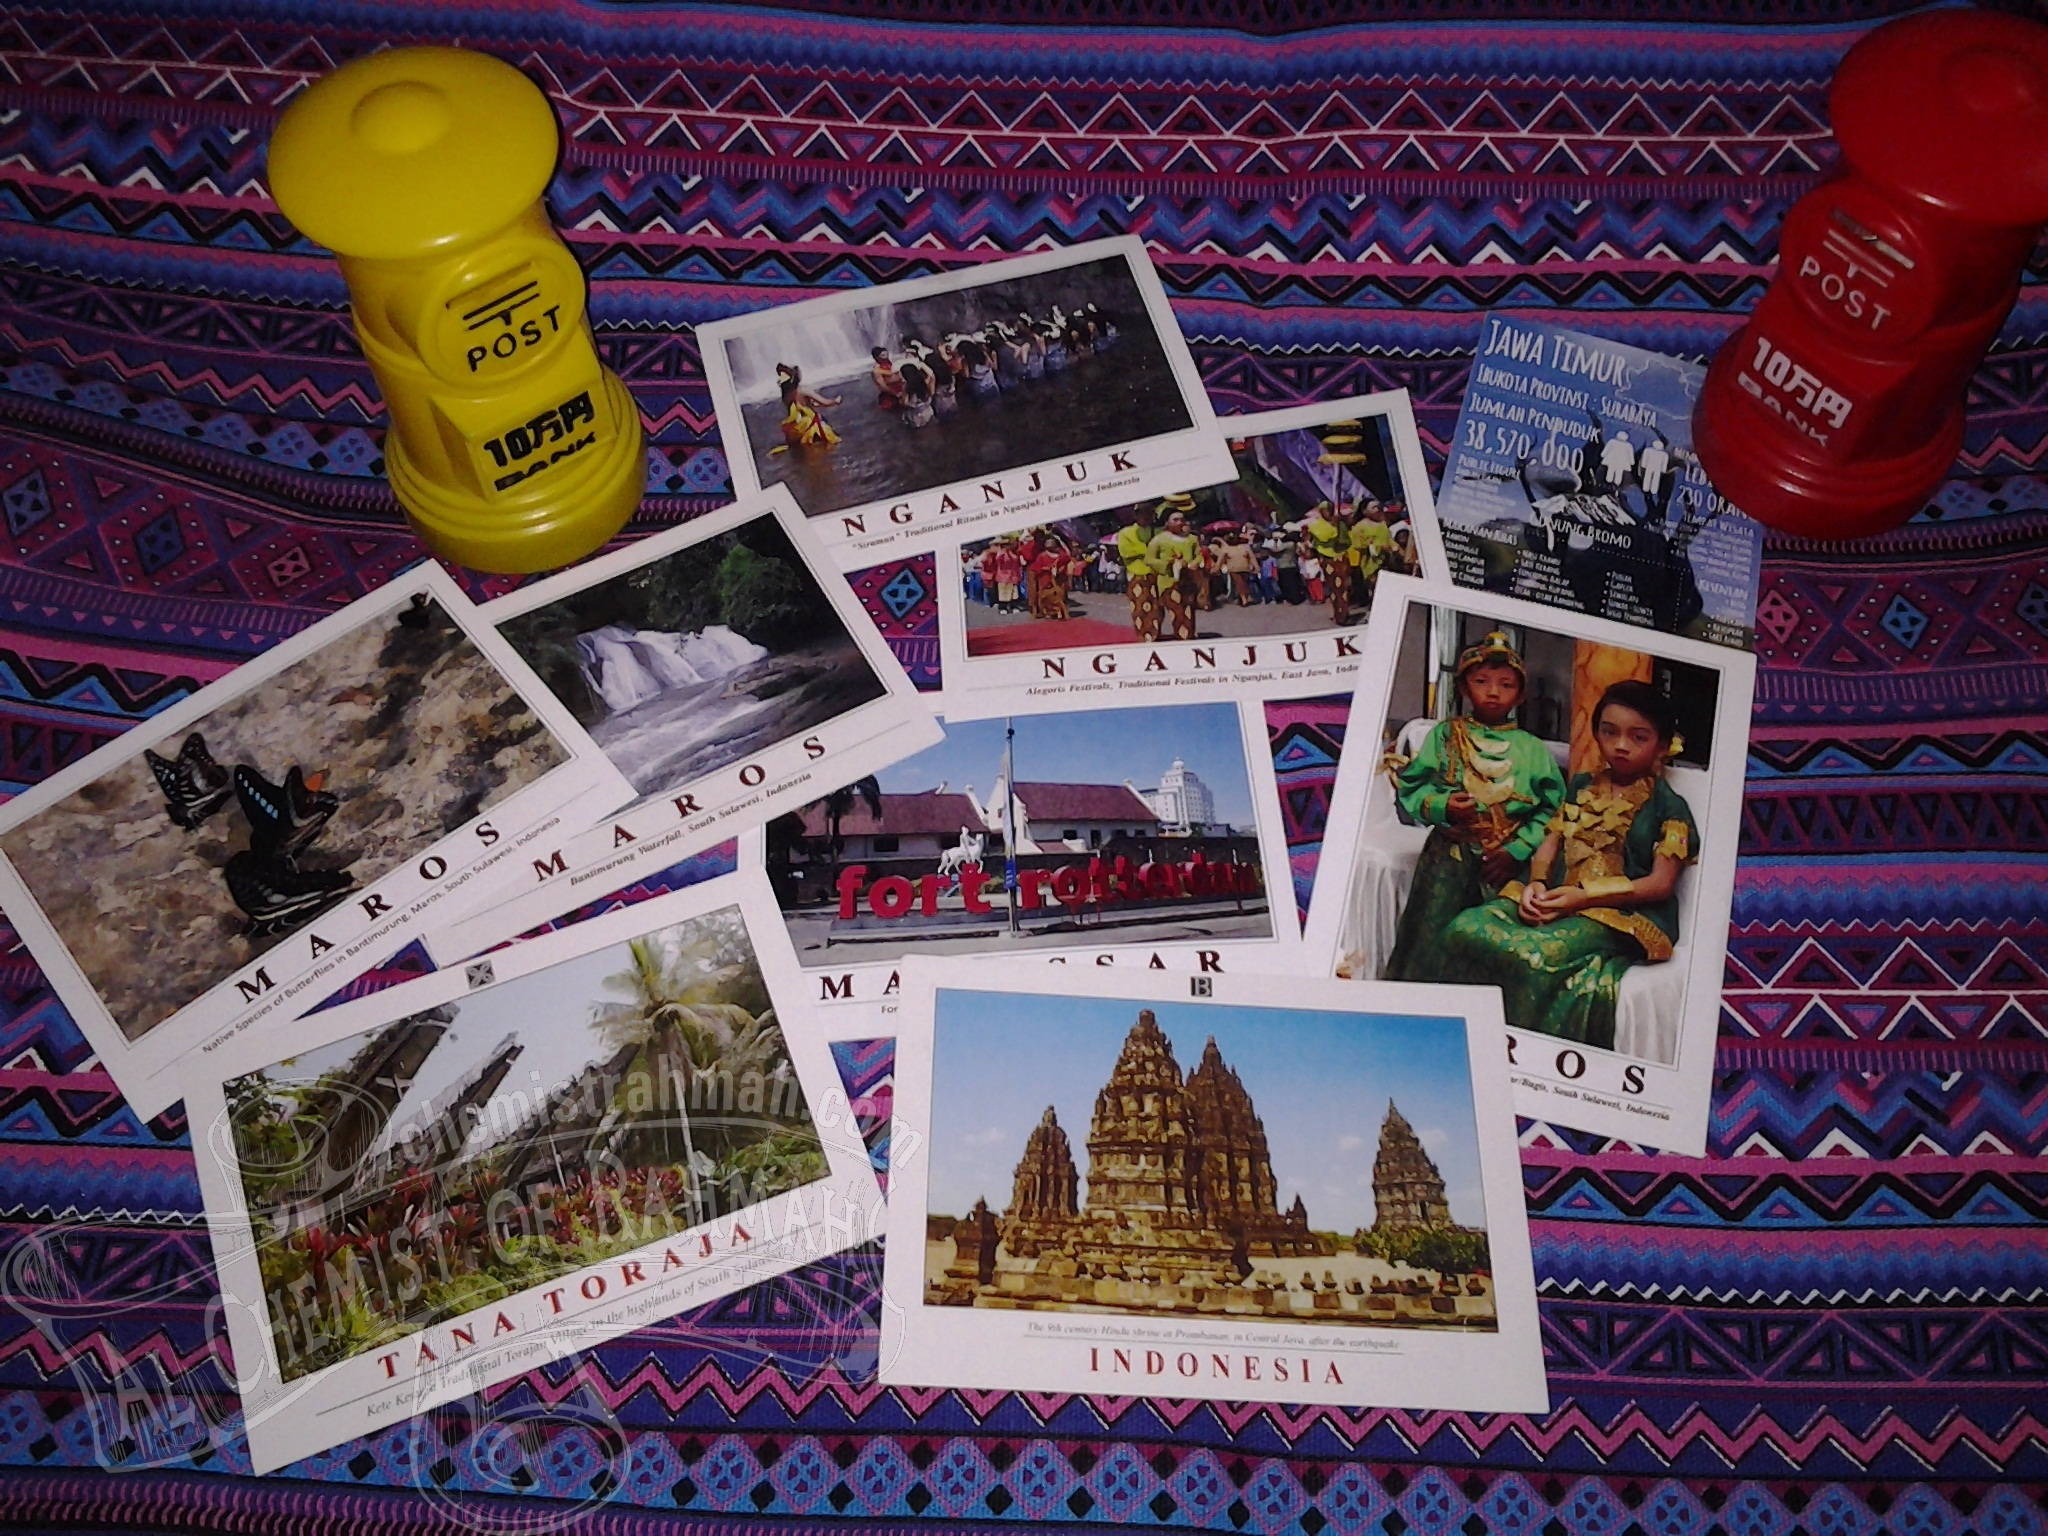 Postcards of Indonesia